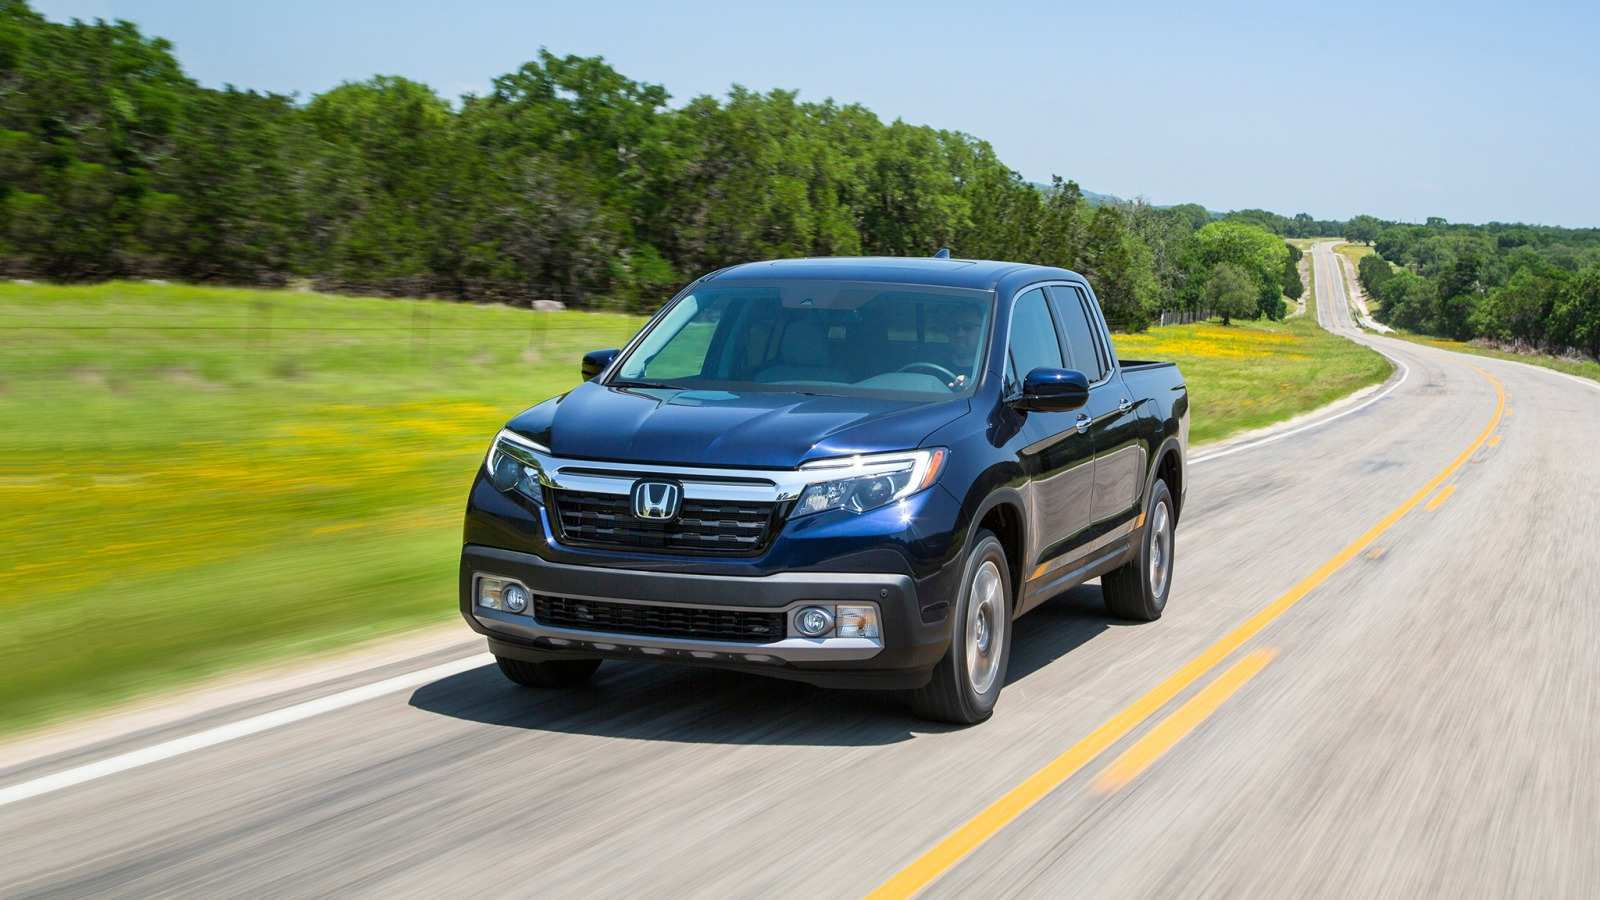 70 New 2019 Honda Ridgeline Incentives Prices